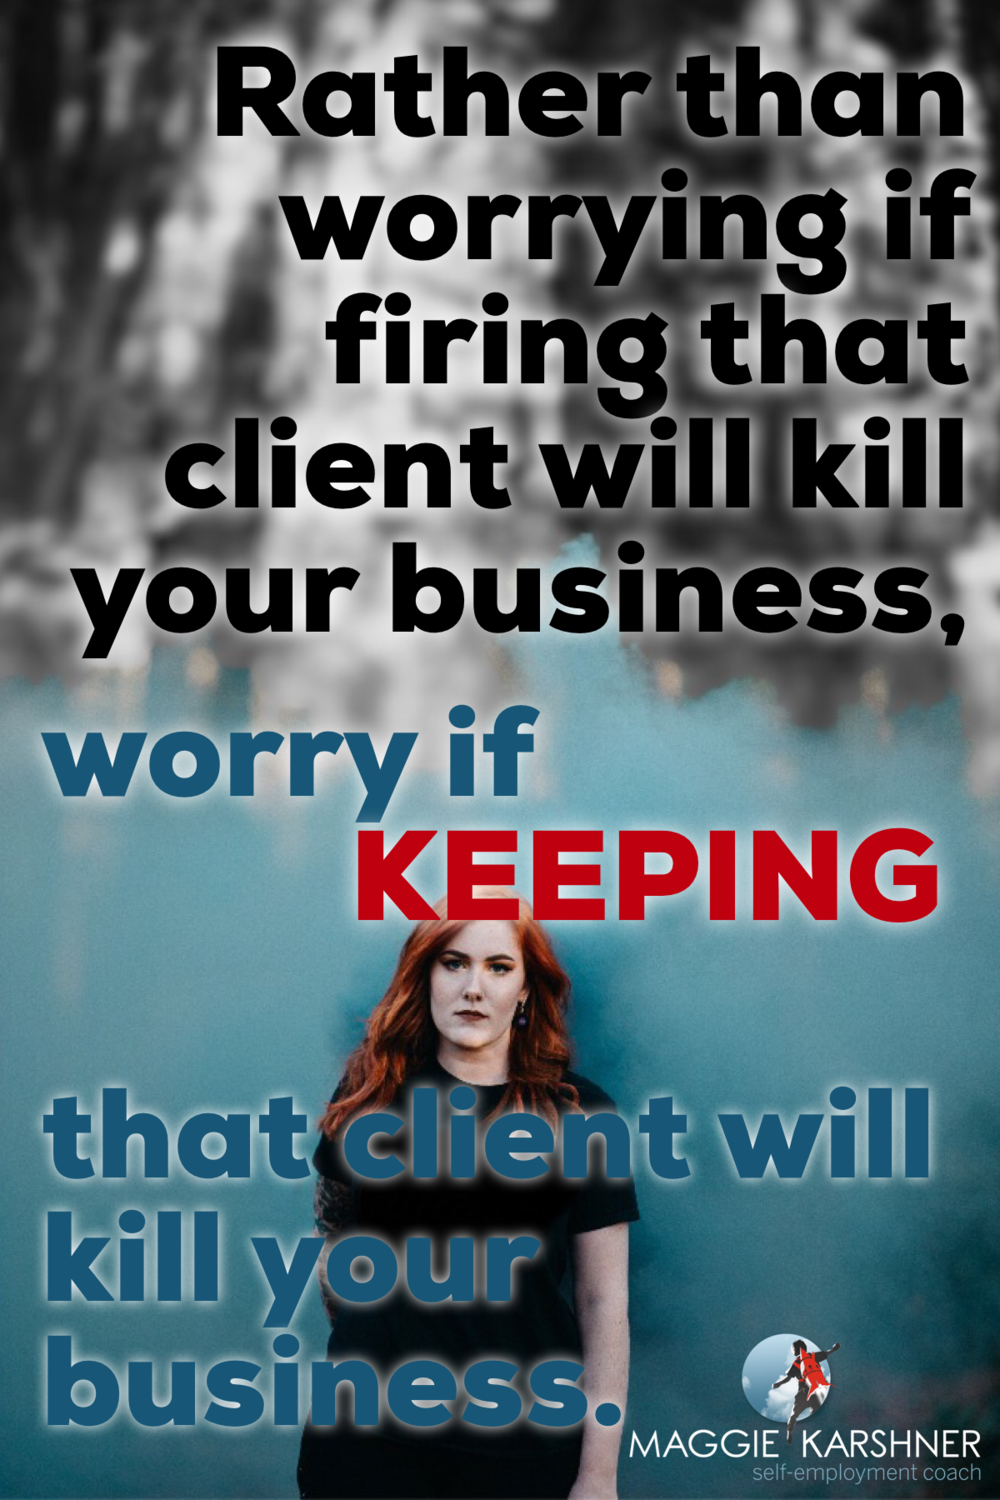 rather-than-worrying-if-firing-that-client-will-kill-your-business_tall.png